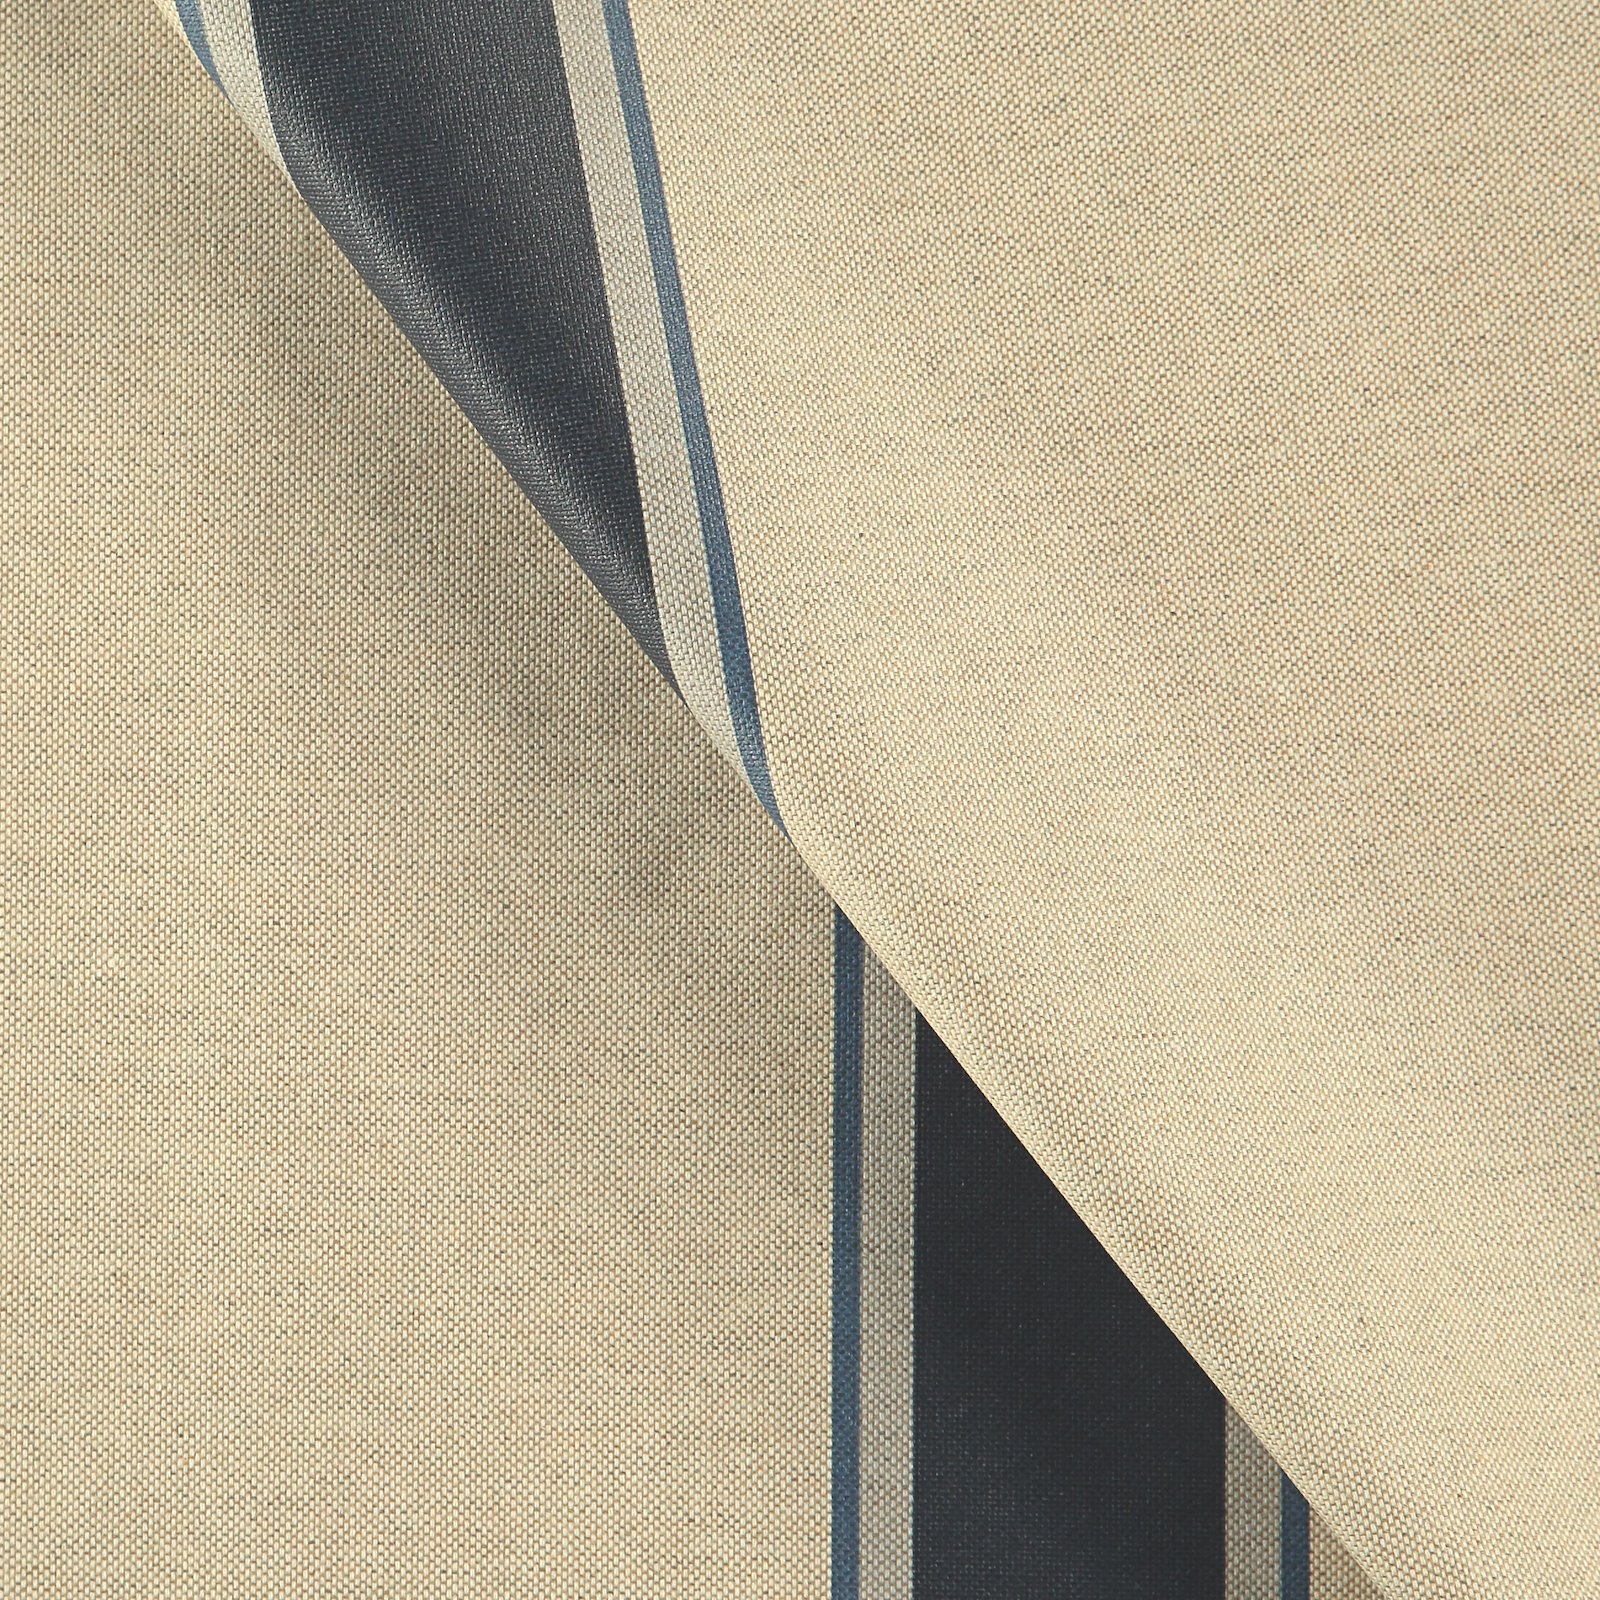 Woven oilcloth linenlook w blue stripes 872296_pack